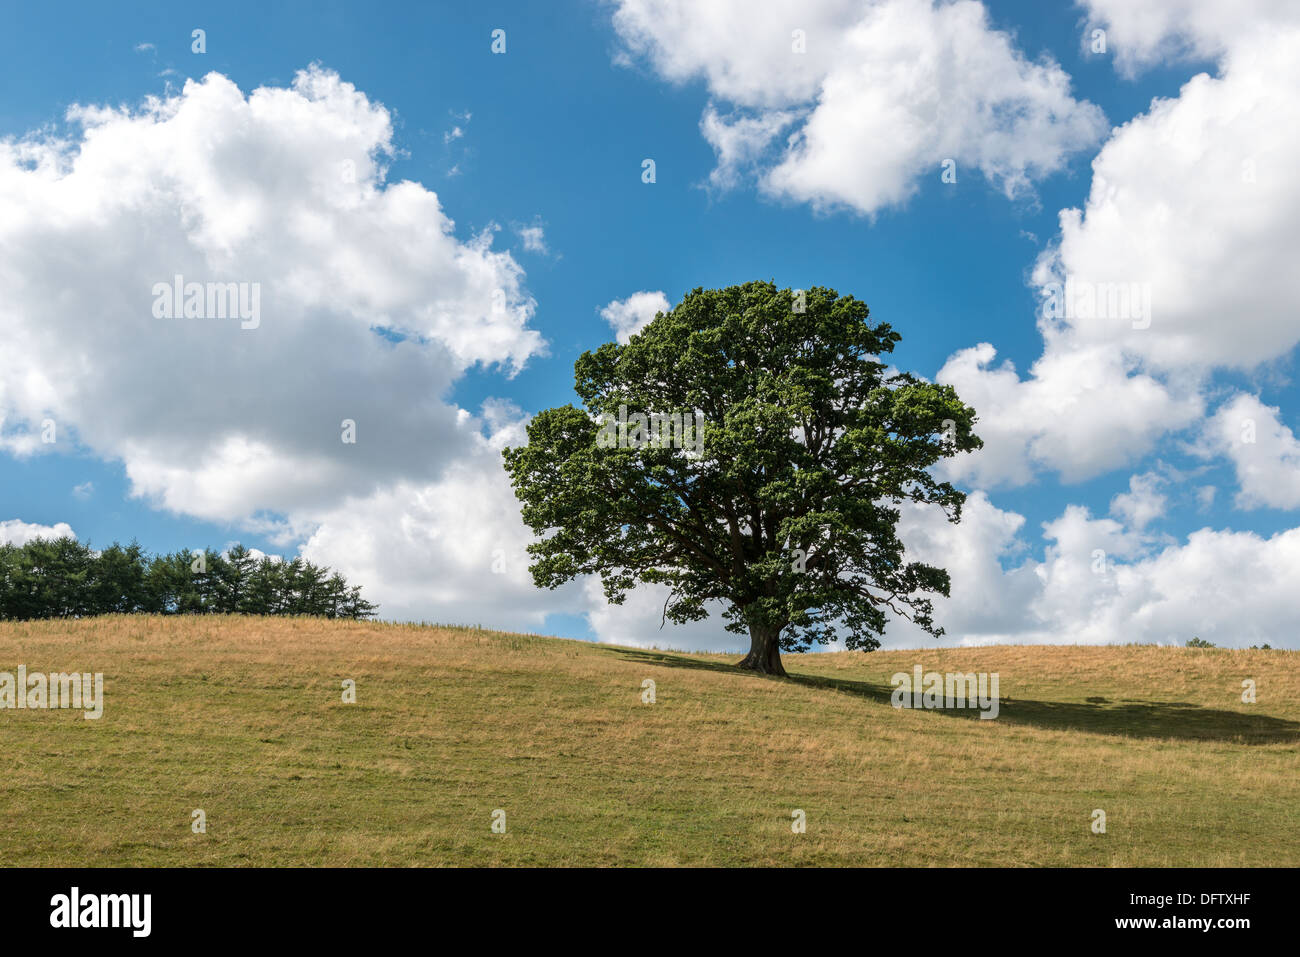 OAK TREE IN HIGH SUMMER ON GRASS COVERED HILLS WITH BLUE SKY AND WHITE CLOUDS. HEDGE AT TOP OF HILL. UK PORTRAIT FORMAT - Stock Image